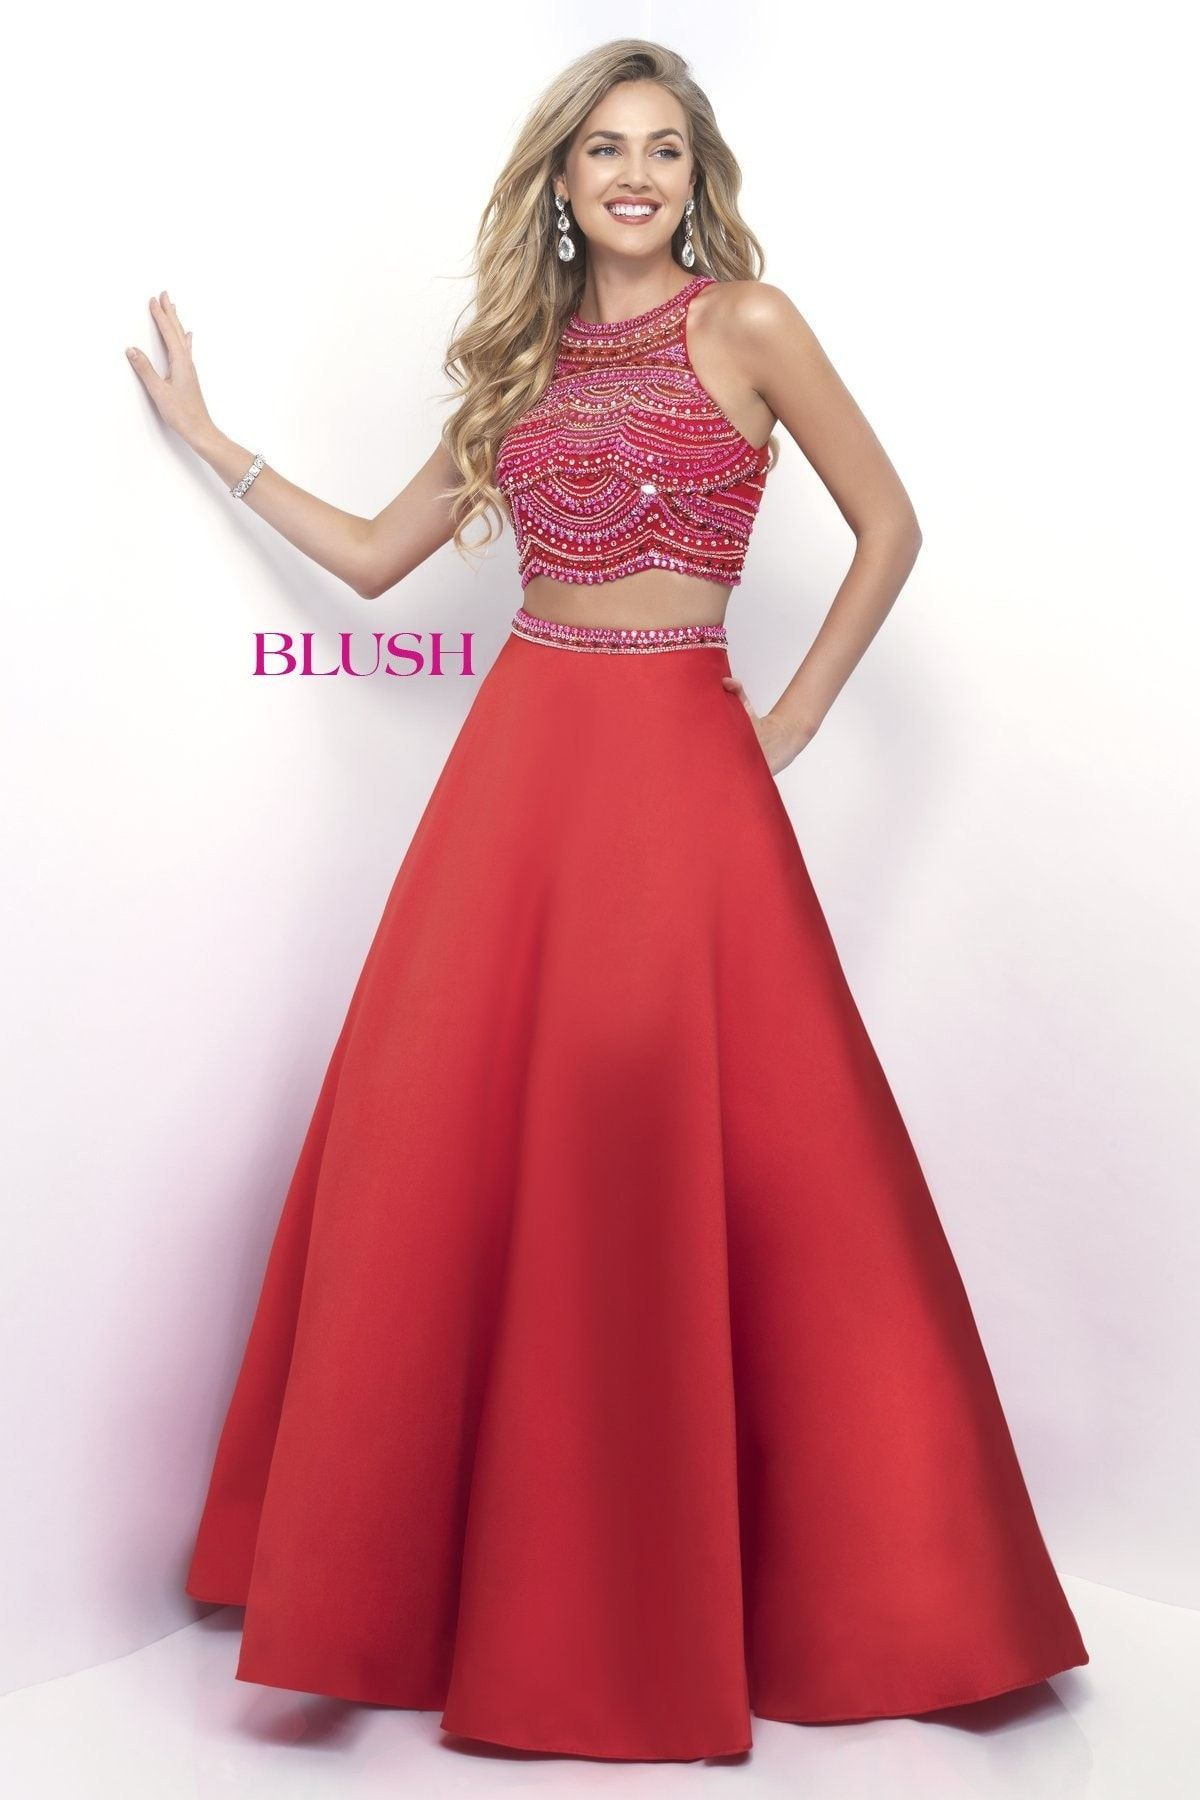 Pink by blush valentinepink twopiece prom dress Літо